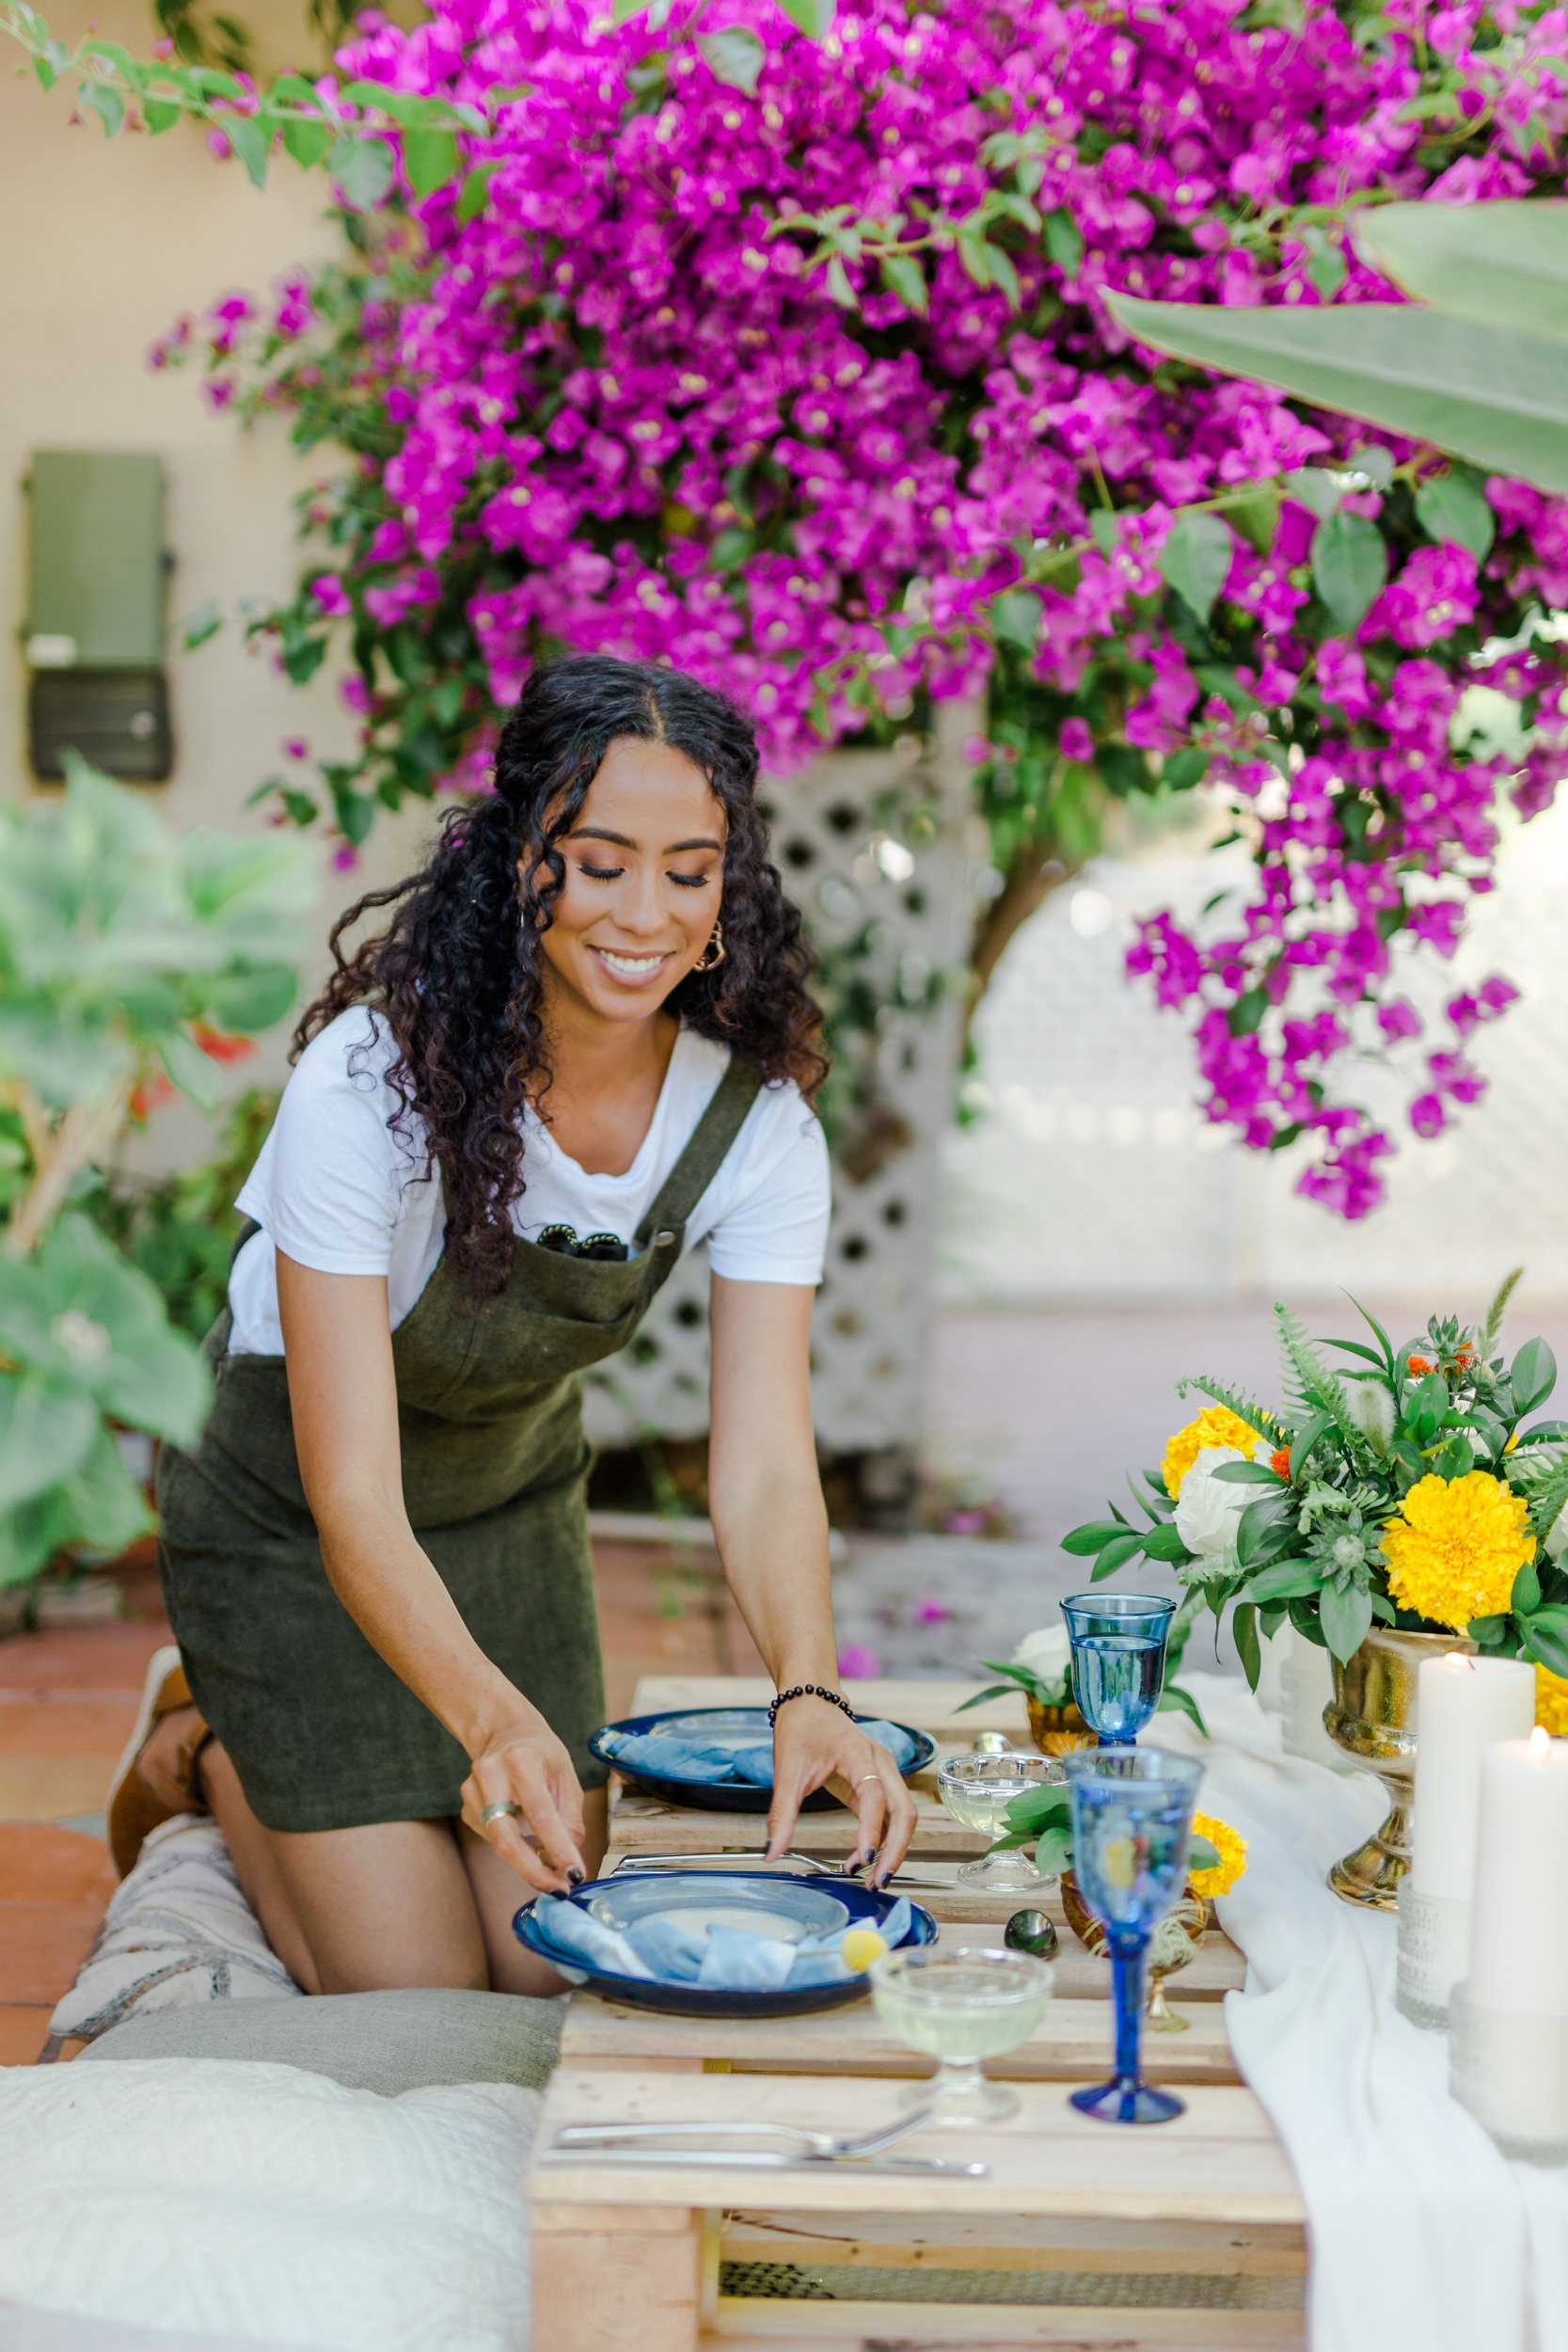 Hello! - I'm Alysa Monét, owner and lead designer of by Alysa Monét, a wedding design consulting firm that specializes in wedding planning and wedding management. I've been in the wedding industry for the greater part of 8 years and love bringing couples' wedding day visions to life! My design style is a perfect blend of classic pieces paired with contemporary trends that both make a statement as well as individualize your wedding look. My joys in life are: Beyoncé, elephants, donuts, my hubby and my two dogs Kai and Hula. I love what I do and enjoy getting to meet fun couples who are passionately in love.Our team is local to the San Francisco Bay Area and we are available to travel throughout the country and around the world. We know that wedding planning can be stressful, complicated, and challenging and our priority is to support you in enjoying the wedding planning process by taking care of all of the tedious and difficult wedding related tasks so that you can have all of the fun. Our desire is to leave you with a memorable wedding day filled with personalized touches and unique qualities to make your day stand out from the rest.I look forward to chatting with you and hearing about your wedding day desires. Leave me a note and I'll be in touch!